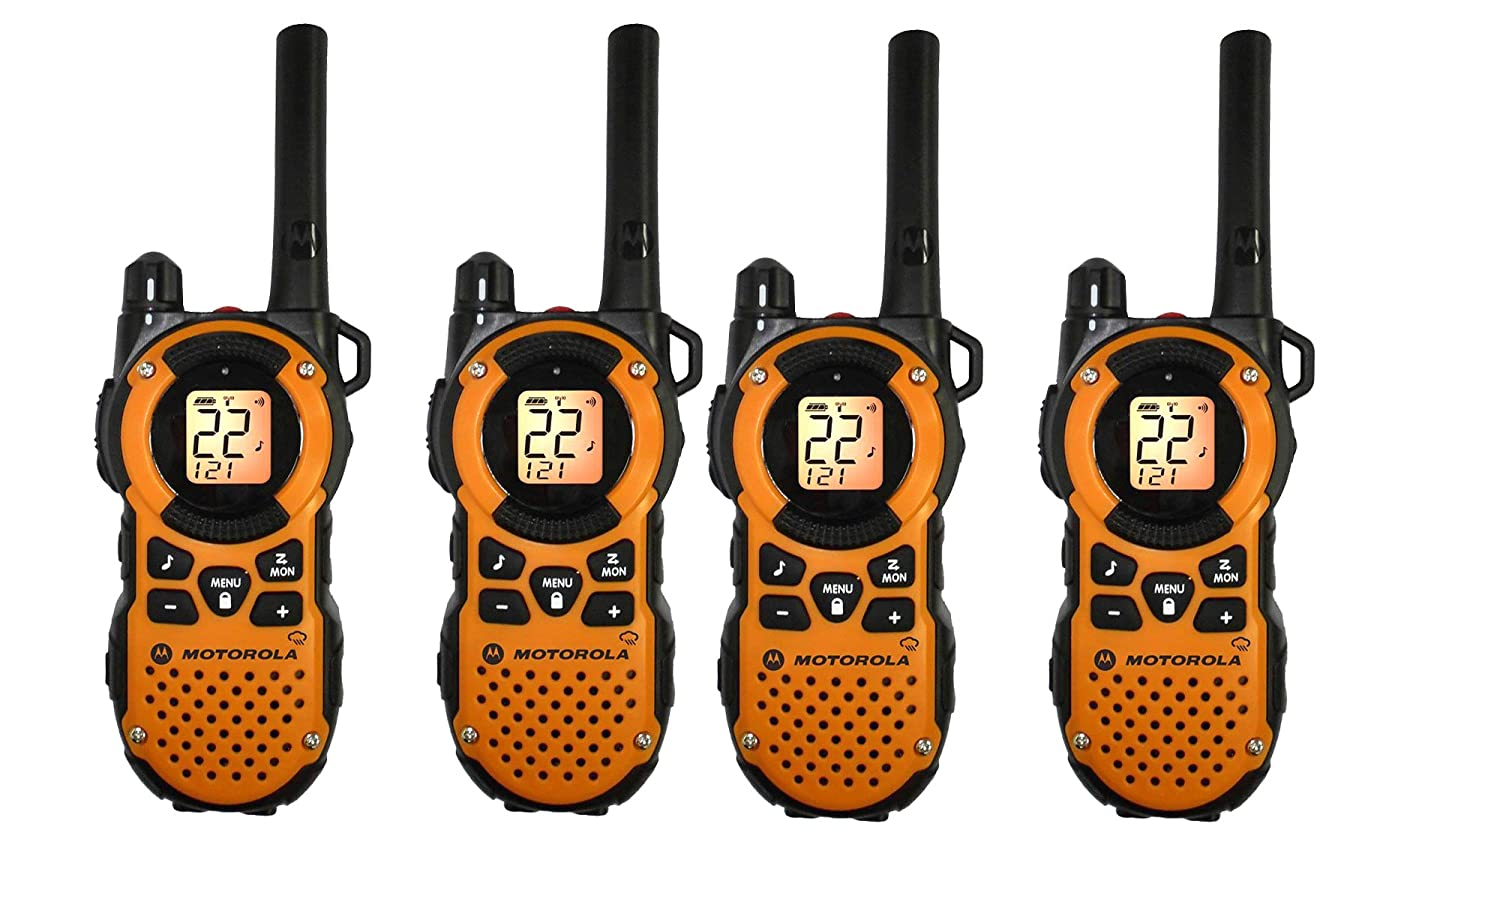 Midland Consumer Radio GXT1030VP4 36-Mile 50-Channel GMRS Two-Way Radio (Black/Yellow)